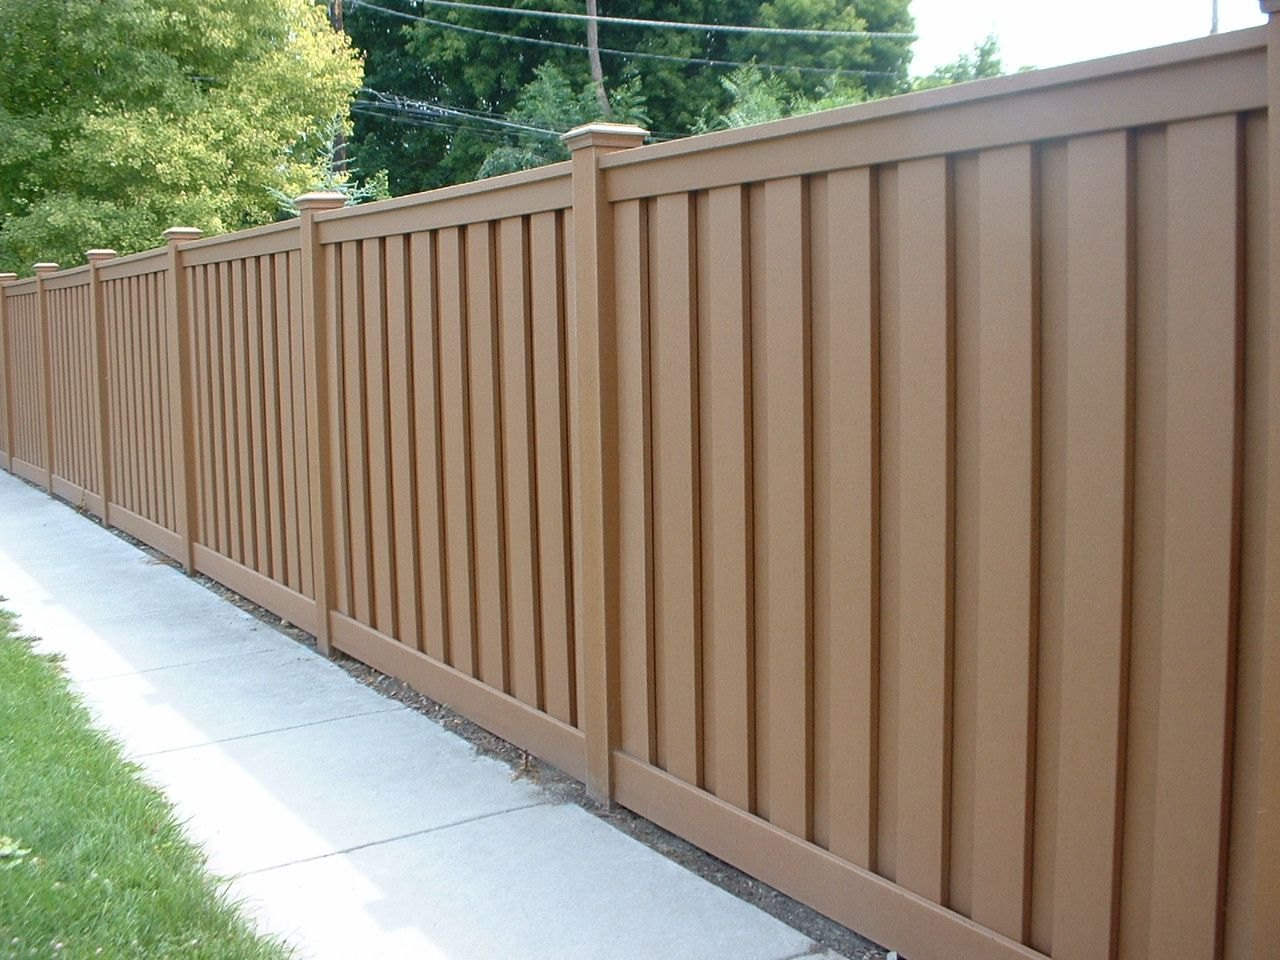 Outdoor patio privacy screen ideas 10 composite wood for Outdoor privacy fence screen